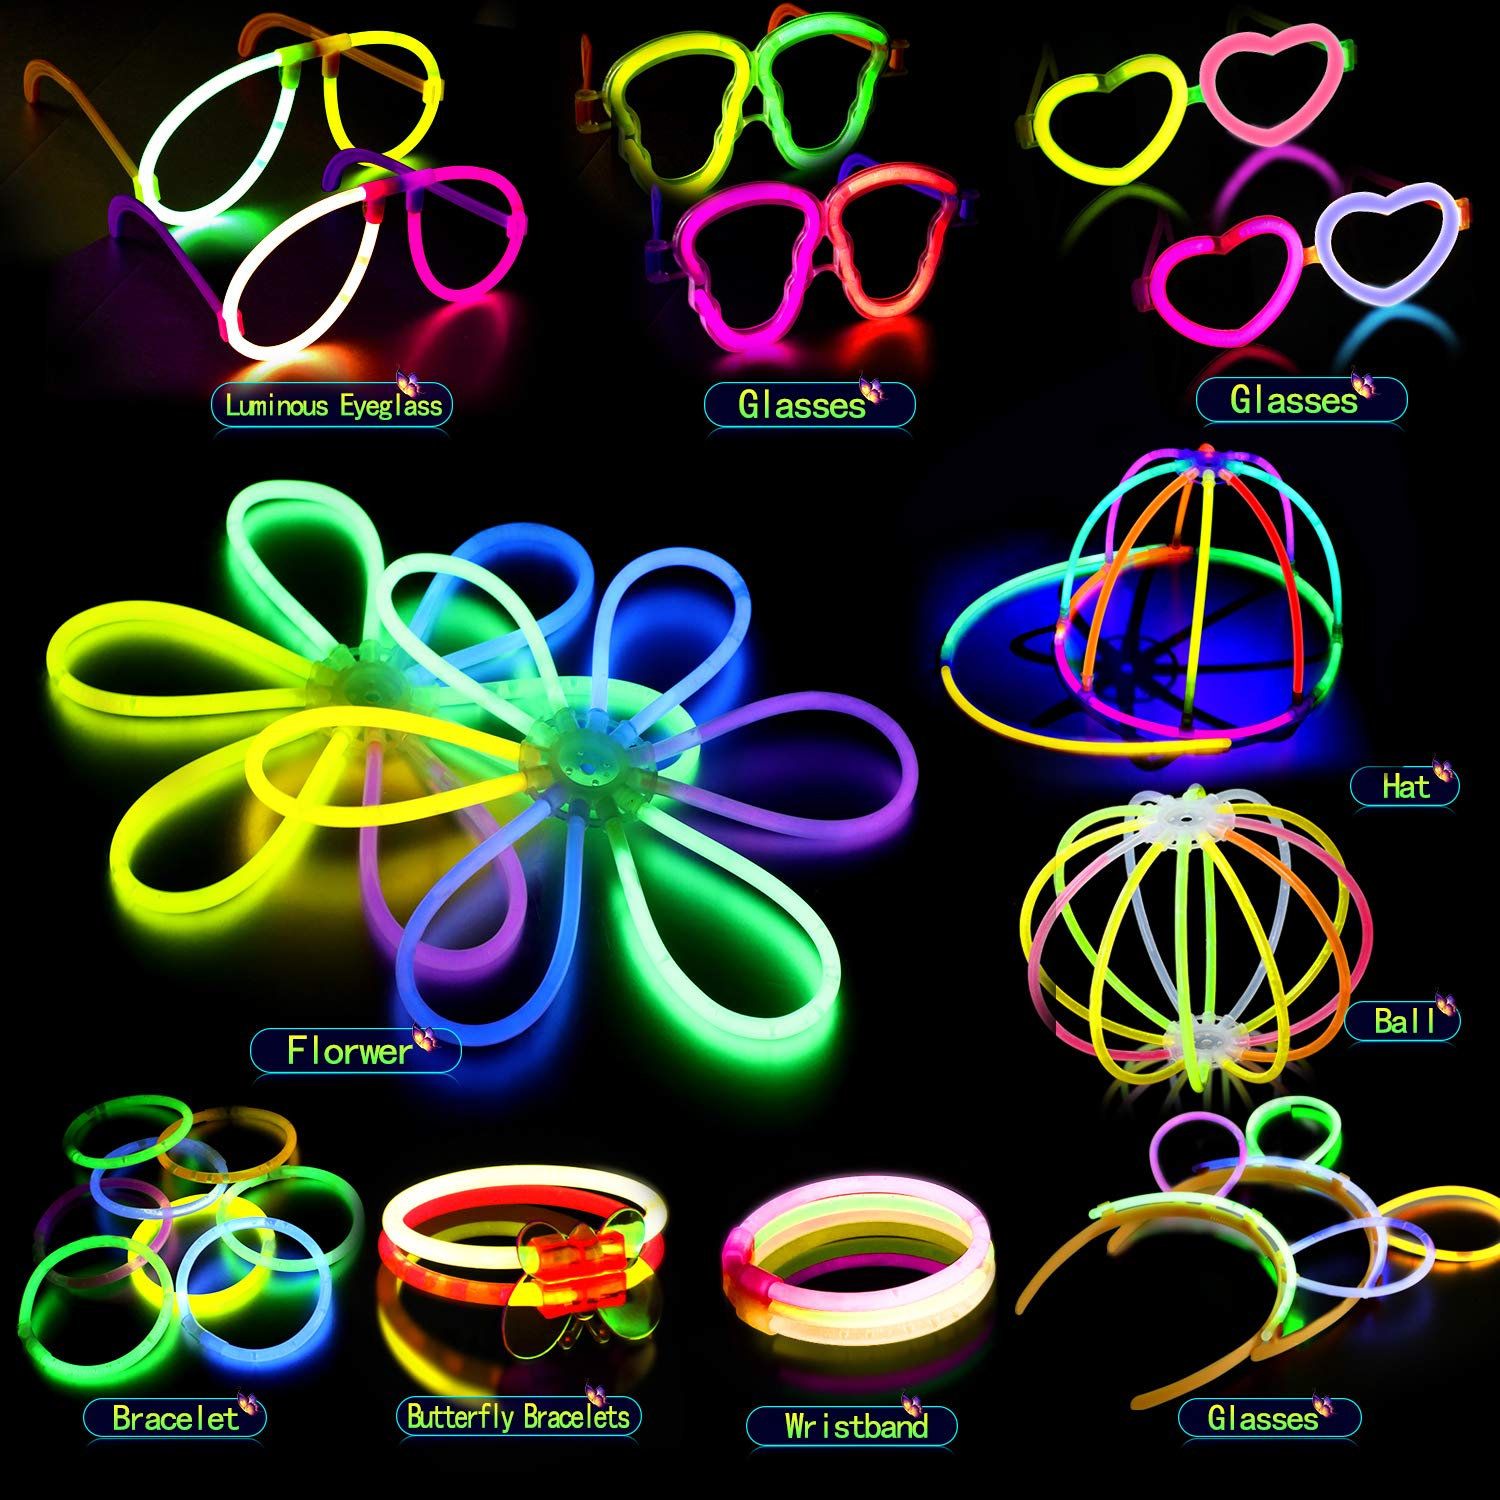 252pcs 8 UV Glow Sticks Mixed Colours Party Pack with Connectors for Bracelets Balls Necklaces Glasses Hats and More Light Up Toys for Kids Boys Girls Adults AMZJUPWM Glow Stick 252 PCS